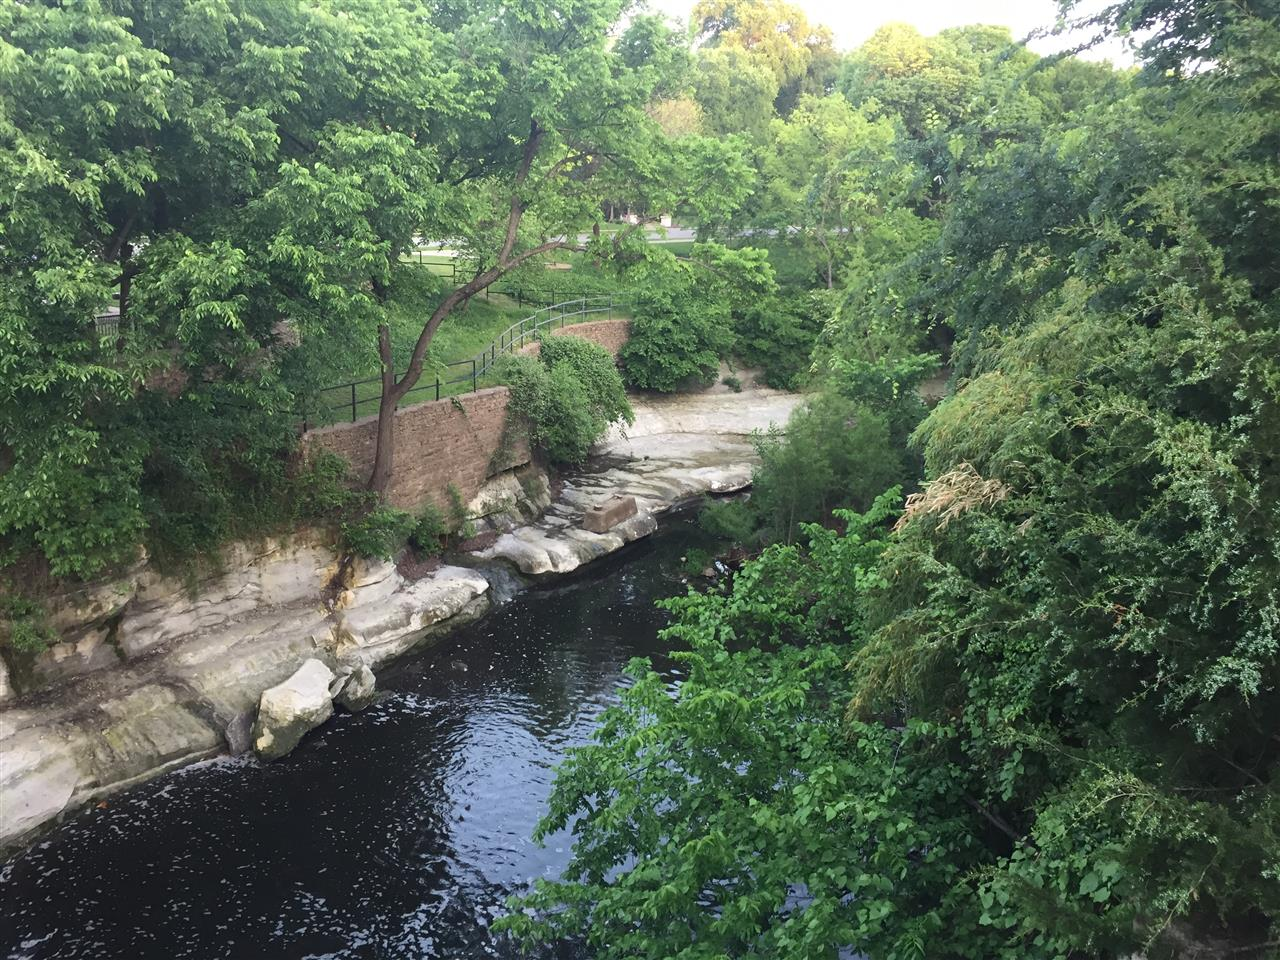 #Highland Park, #Turtle Creek, #Lakeside Park, view from bridge, #Dallas, #Texas